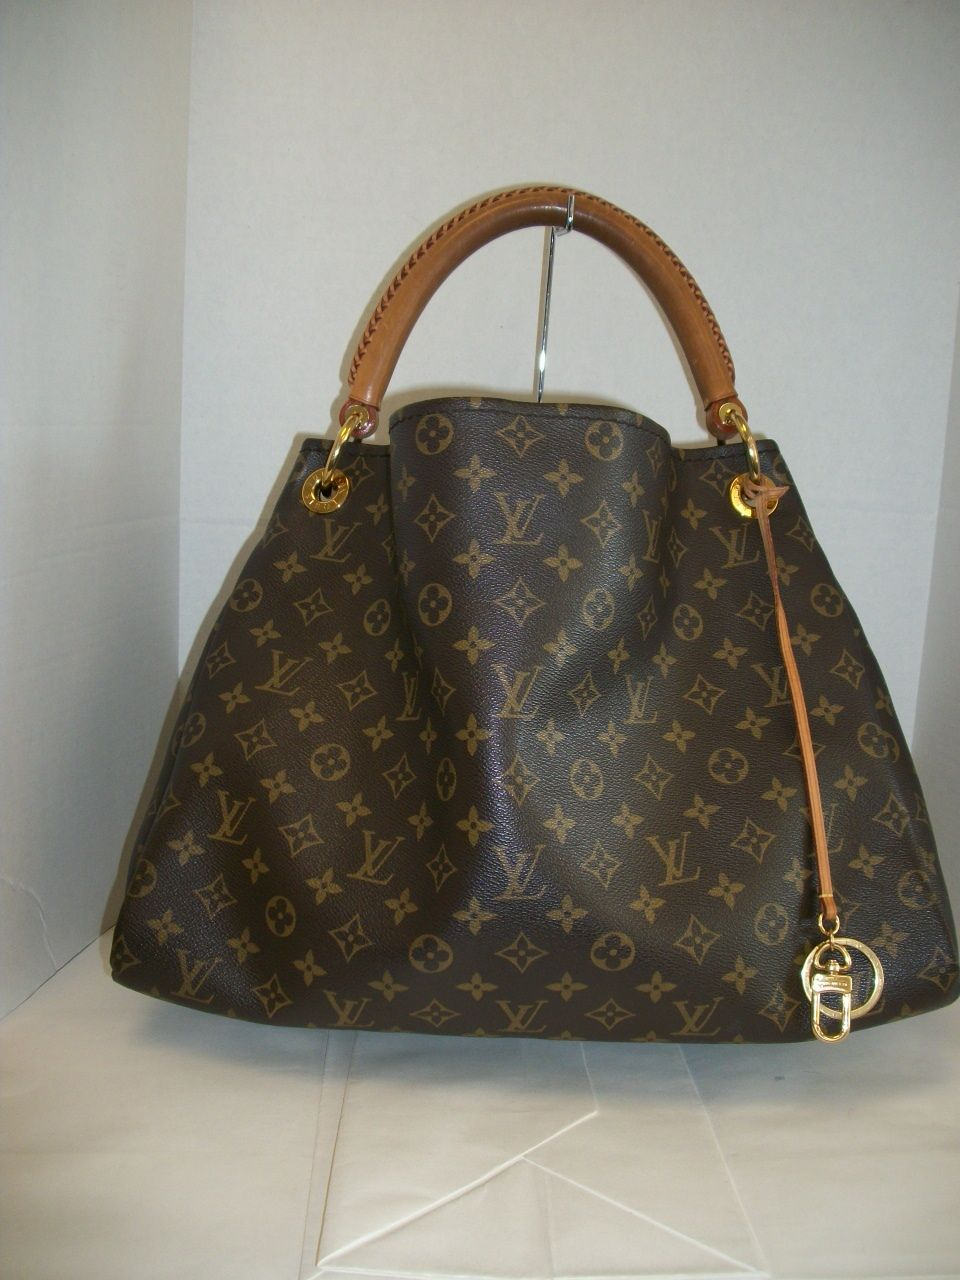 9e0aa06b067d Keeks Buy Sell Designer Handbags - Louis Vuitton Monogram Artsy MM